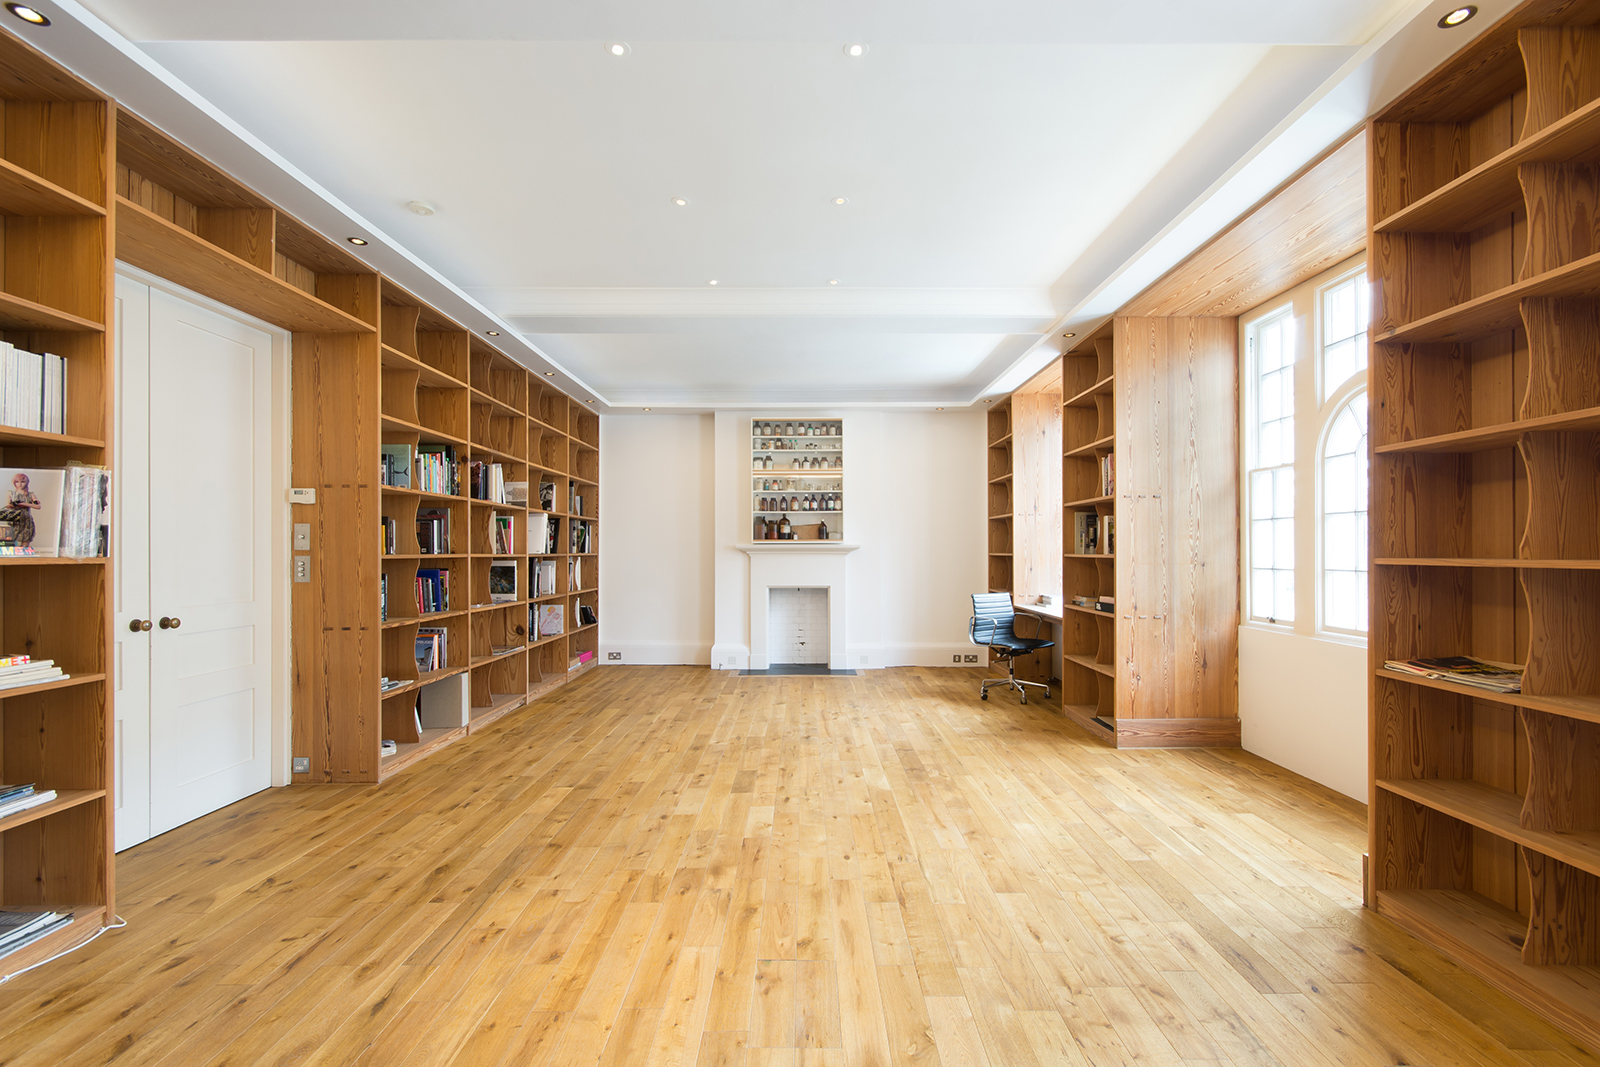 Property of the week: Arts & Crafts home in London